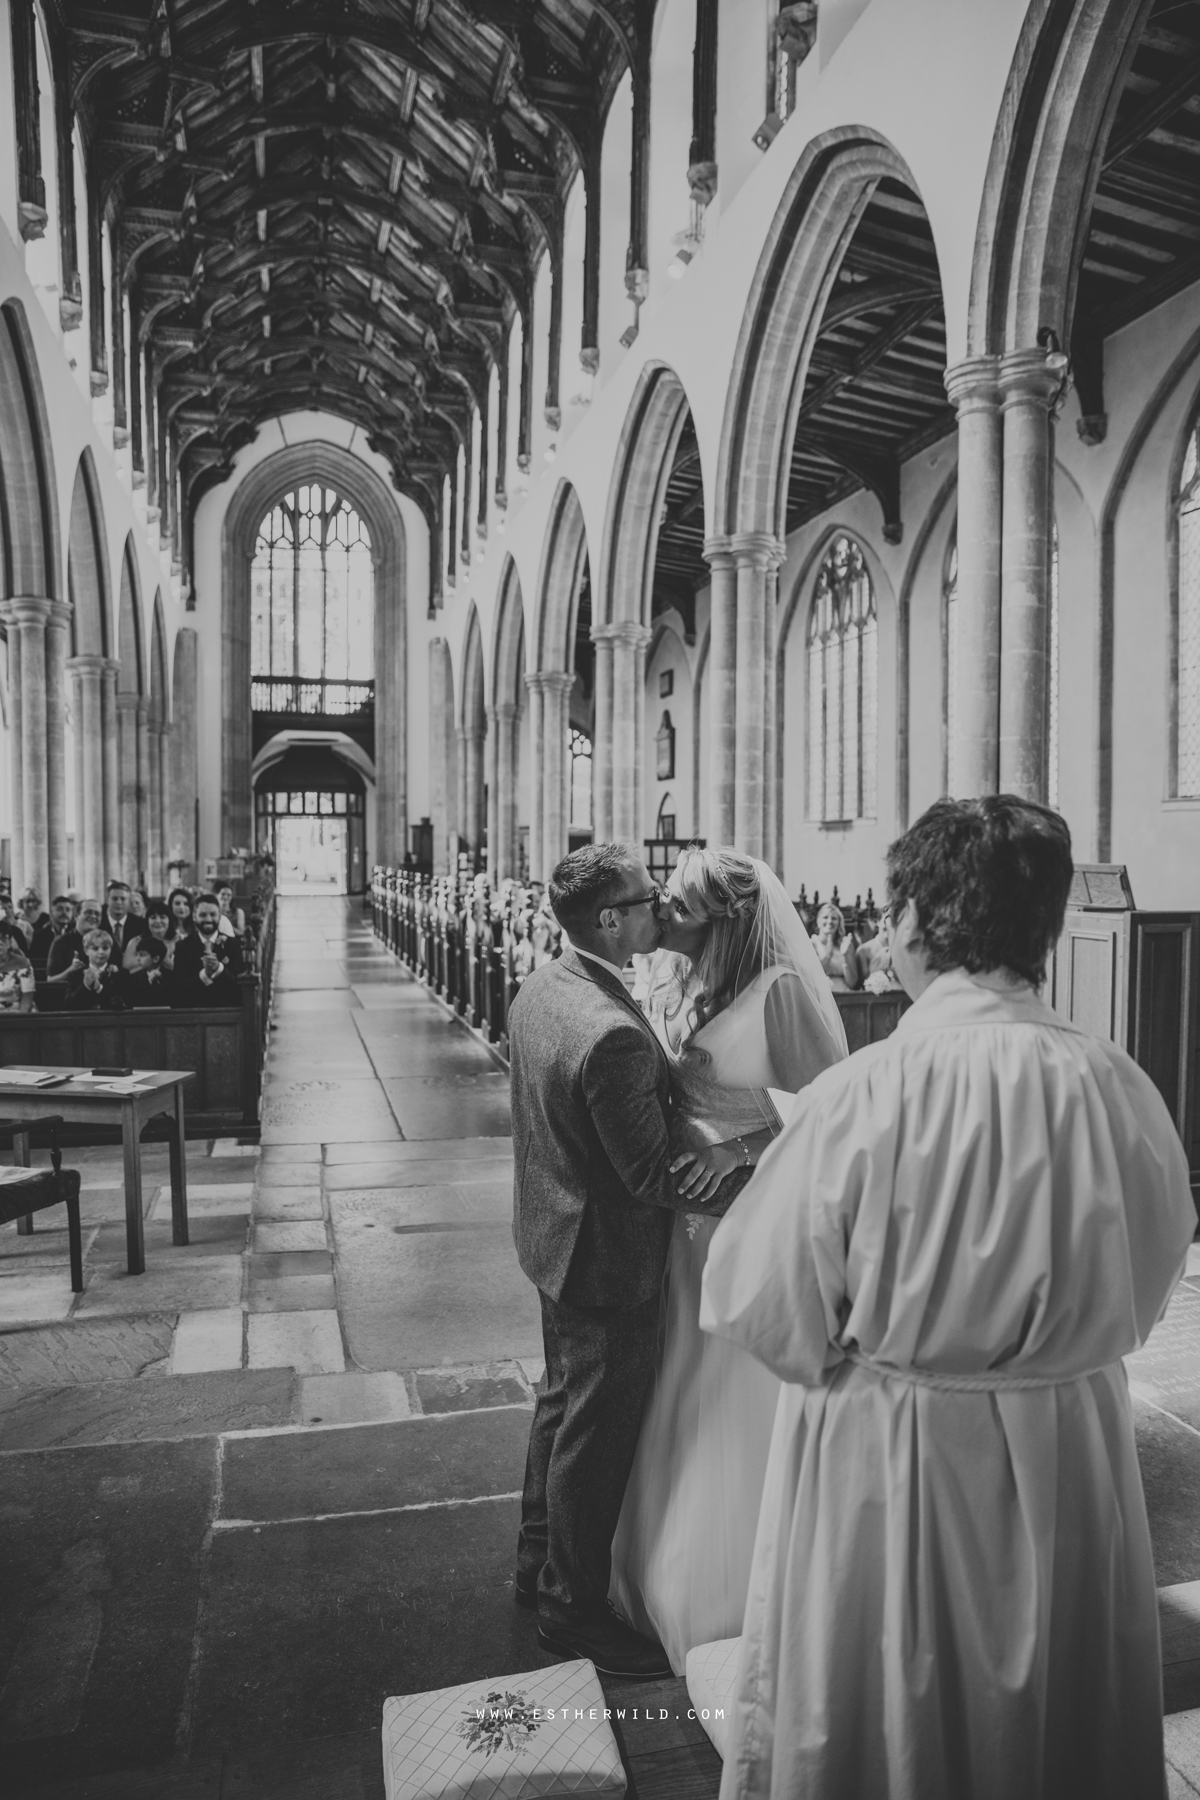 Swaffham_Wedding_Castle_Acre_Norfolk_Esther_Wild_Photographer_Wedding_Photography_3R8A0853-2.jpg